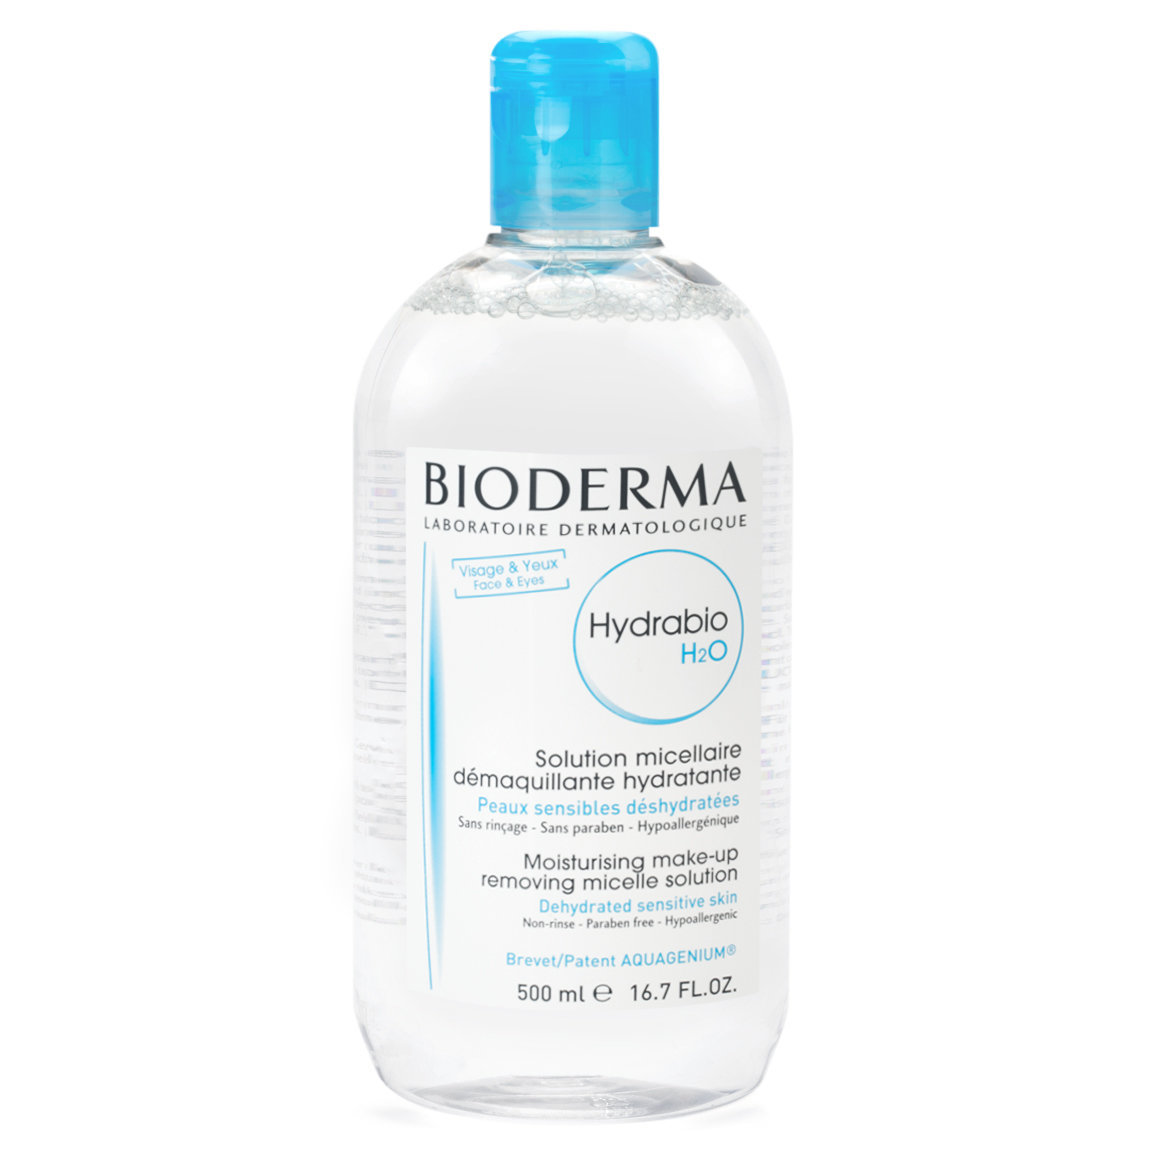 Bioderma Hydrabio H2O 500 ml product swatch.